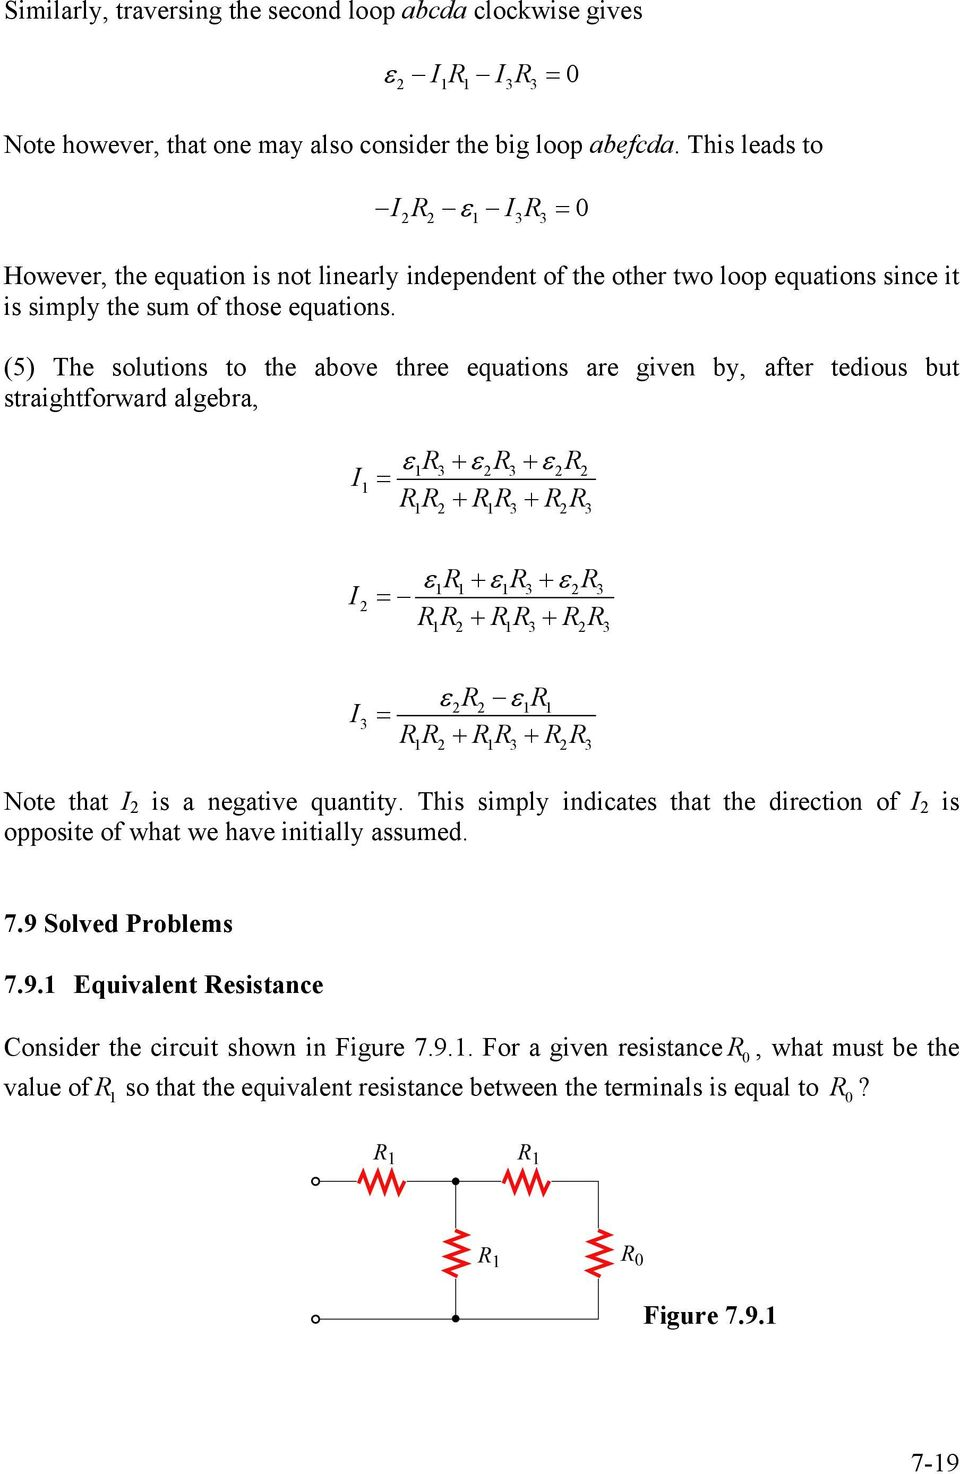 (5) The solutions to the above three equations are given by, after tedious but straightforward algebra, I = R3+ R3+ R R R + RR + R R 3 3 I R+ R3 + R3 = R R + RR + R R 3 3 I 3 = R R R R + RR + R R 3 3